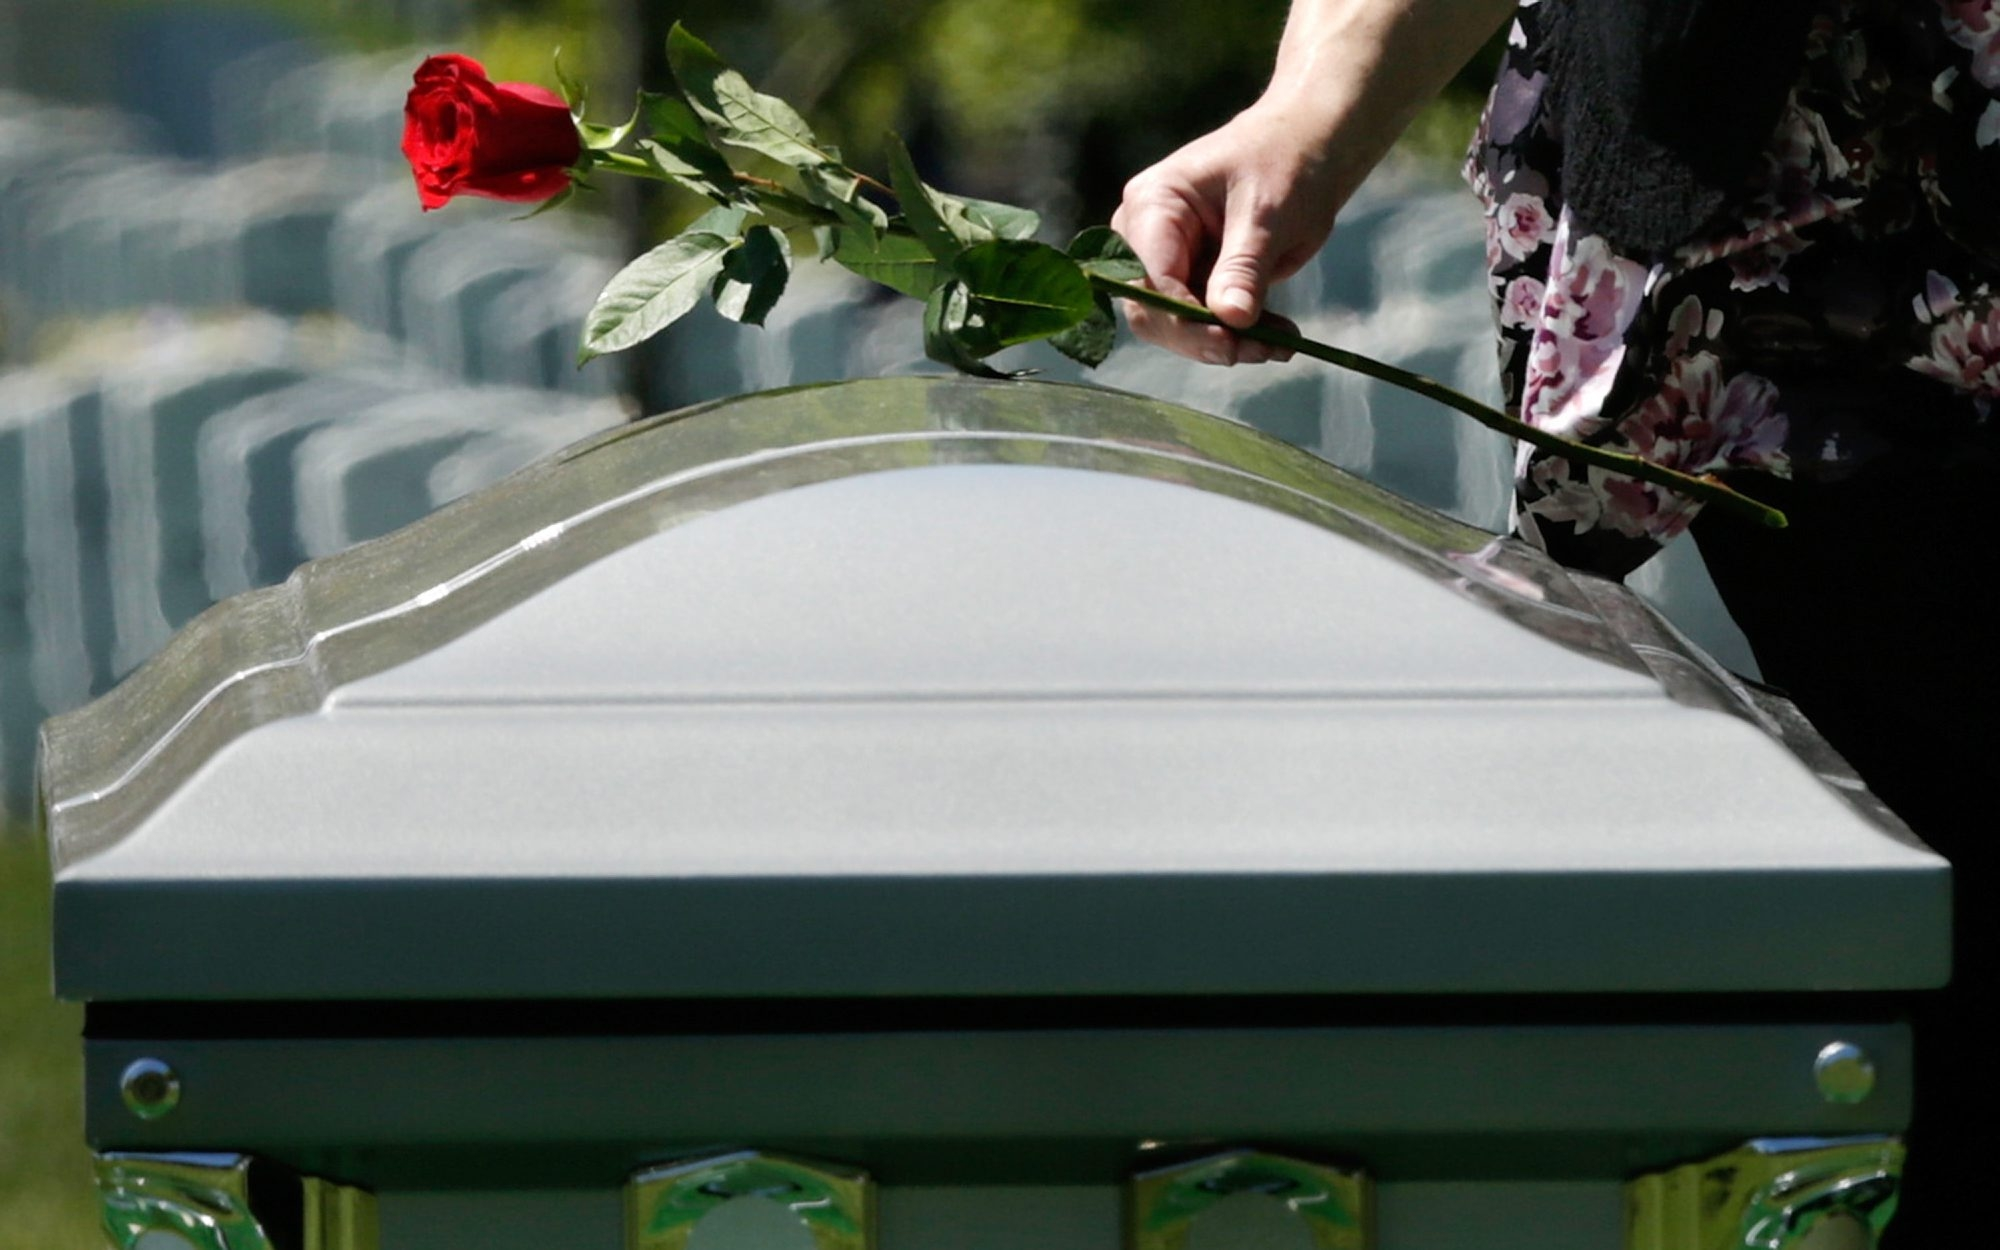 When it comes to funeral planning, most people haven't had much experience.